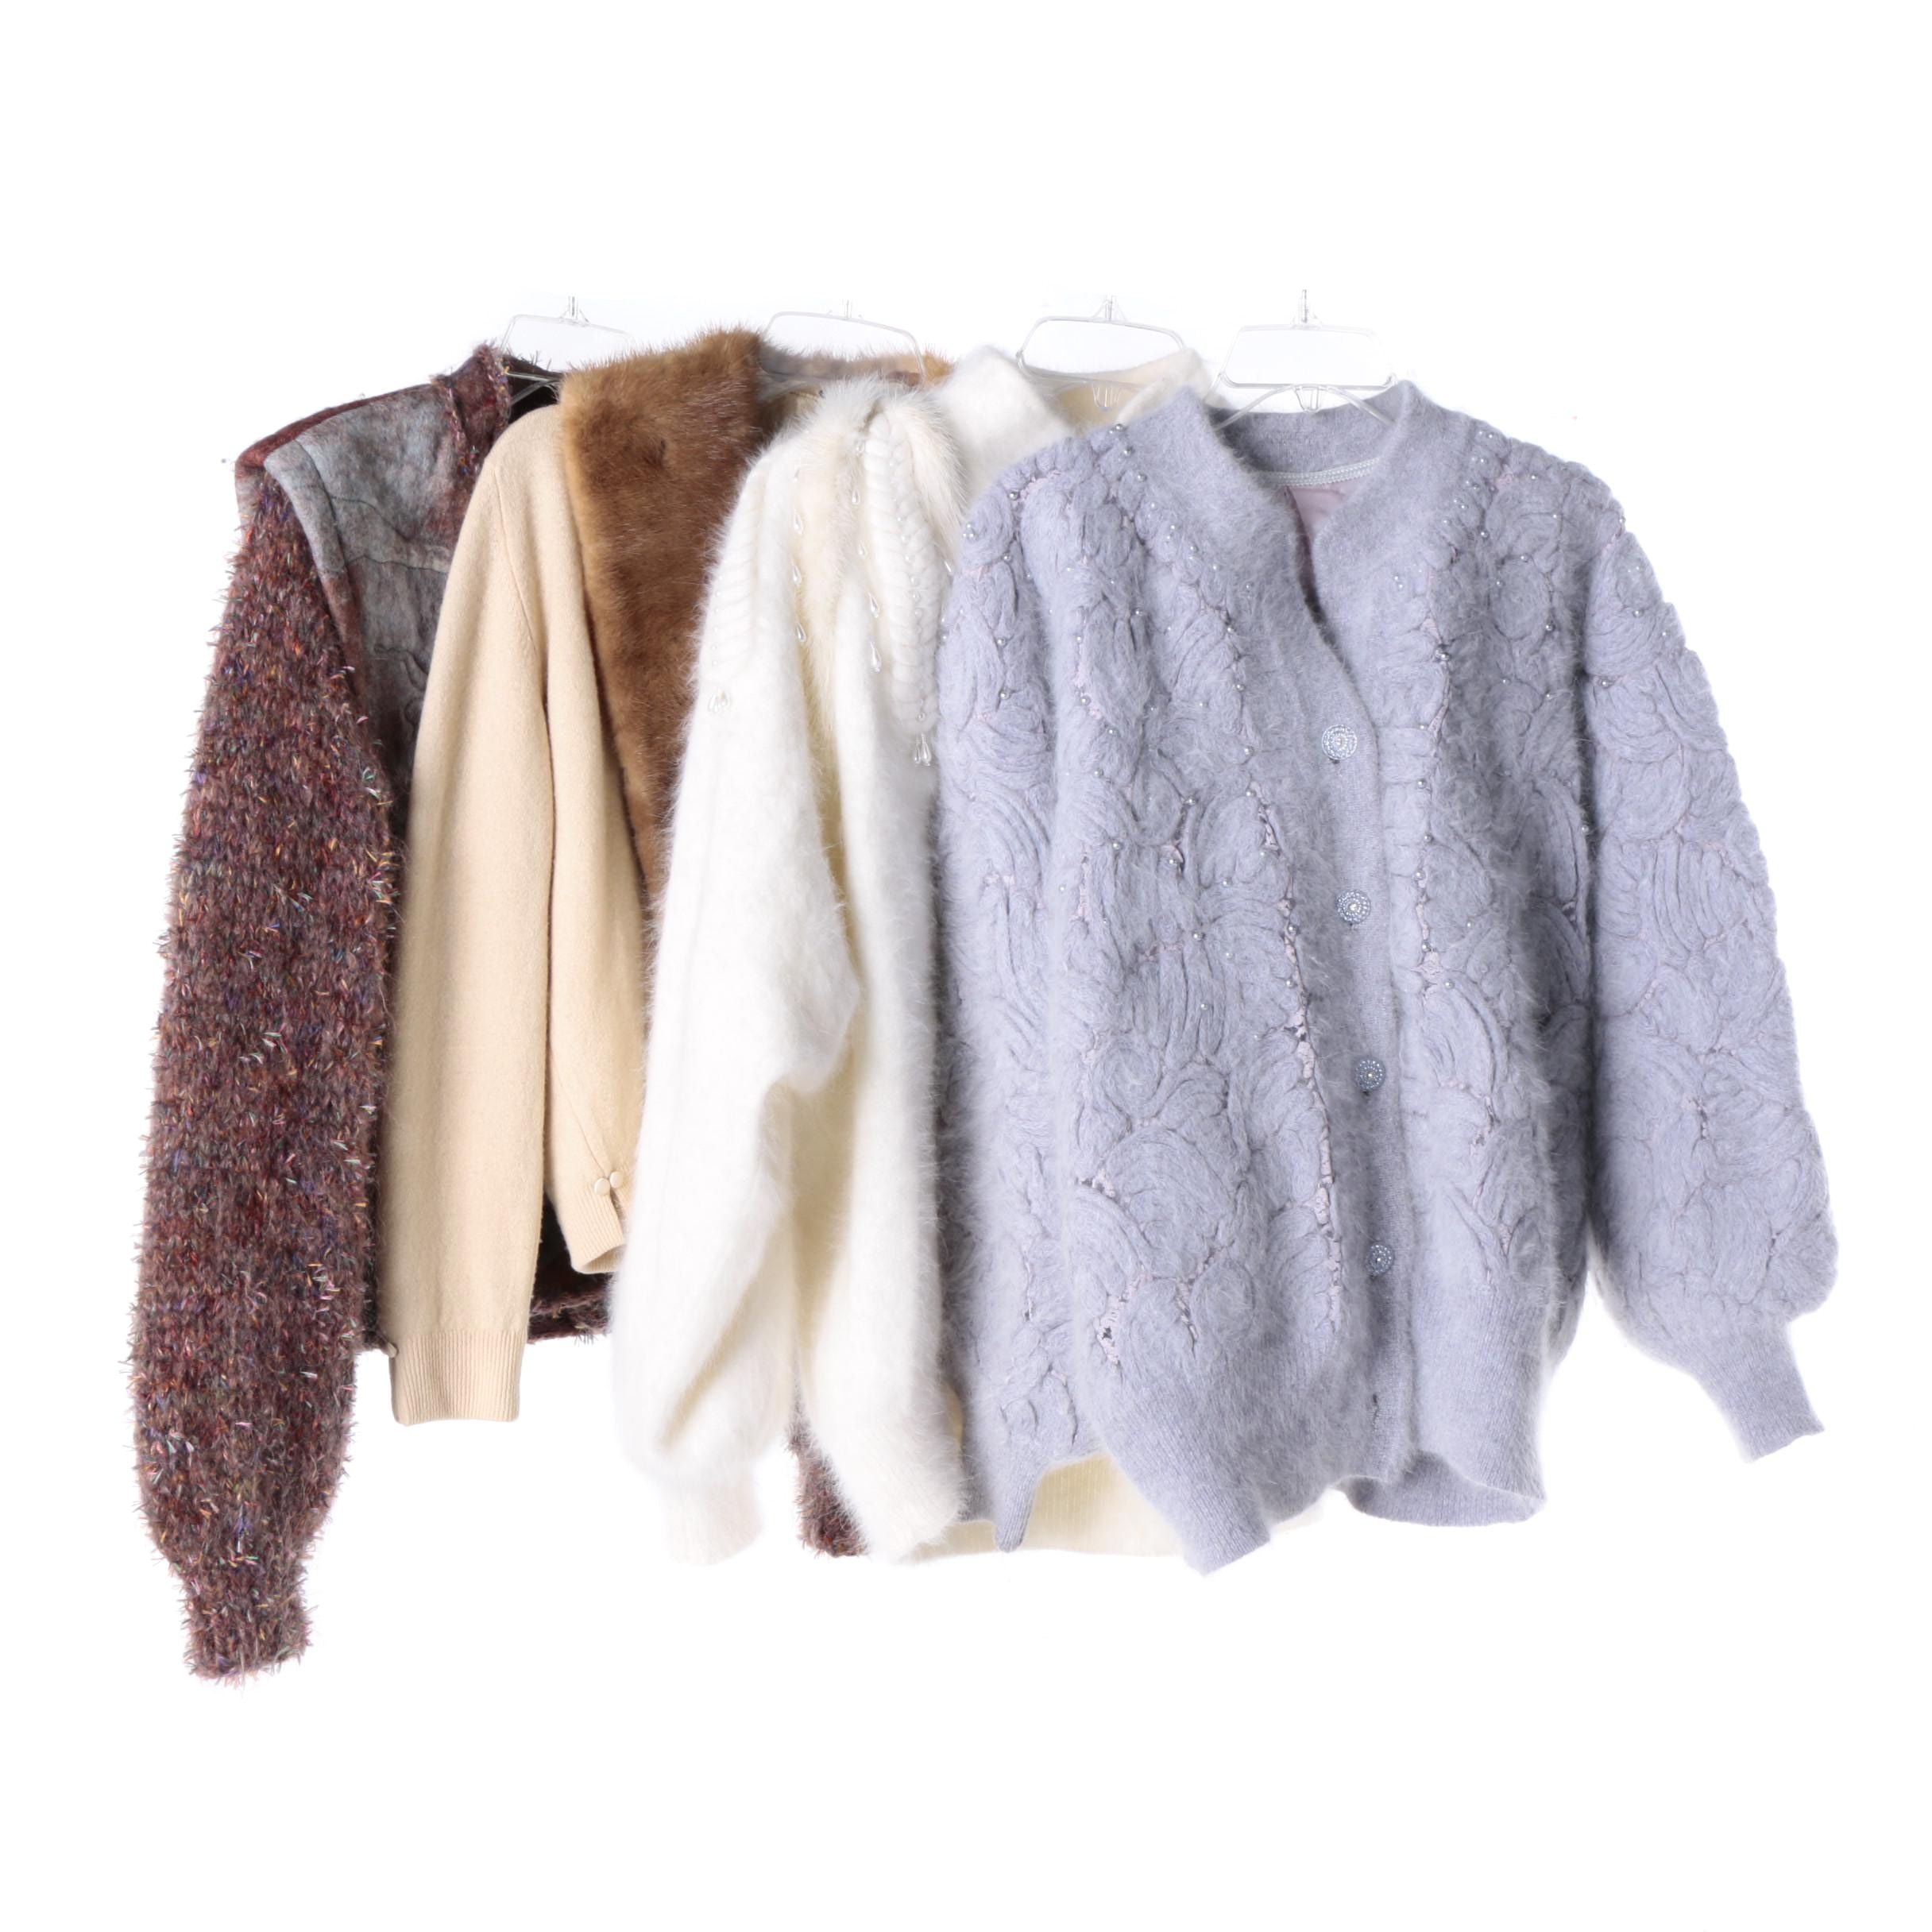 Angora and Knit Sweaters Including Mink Fur Collar